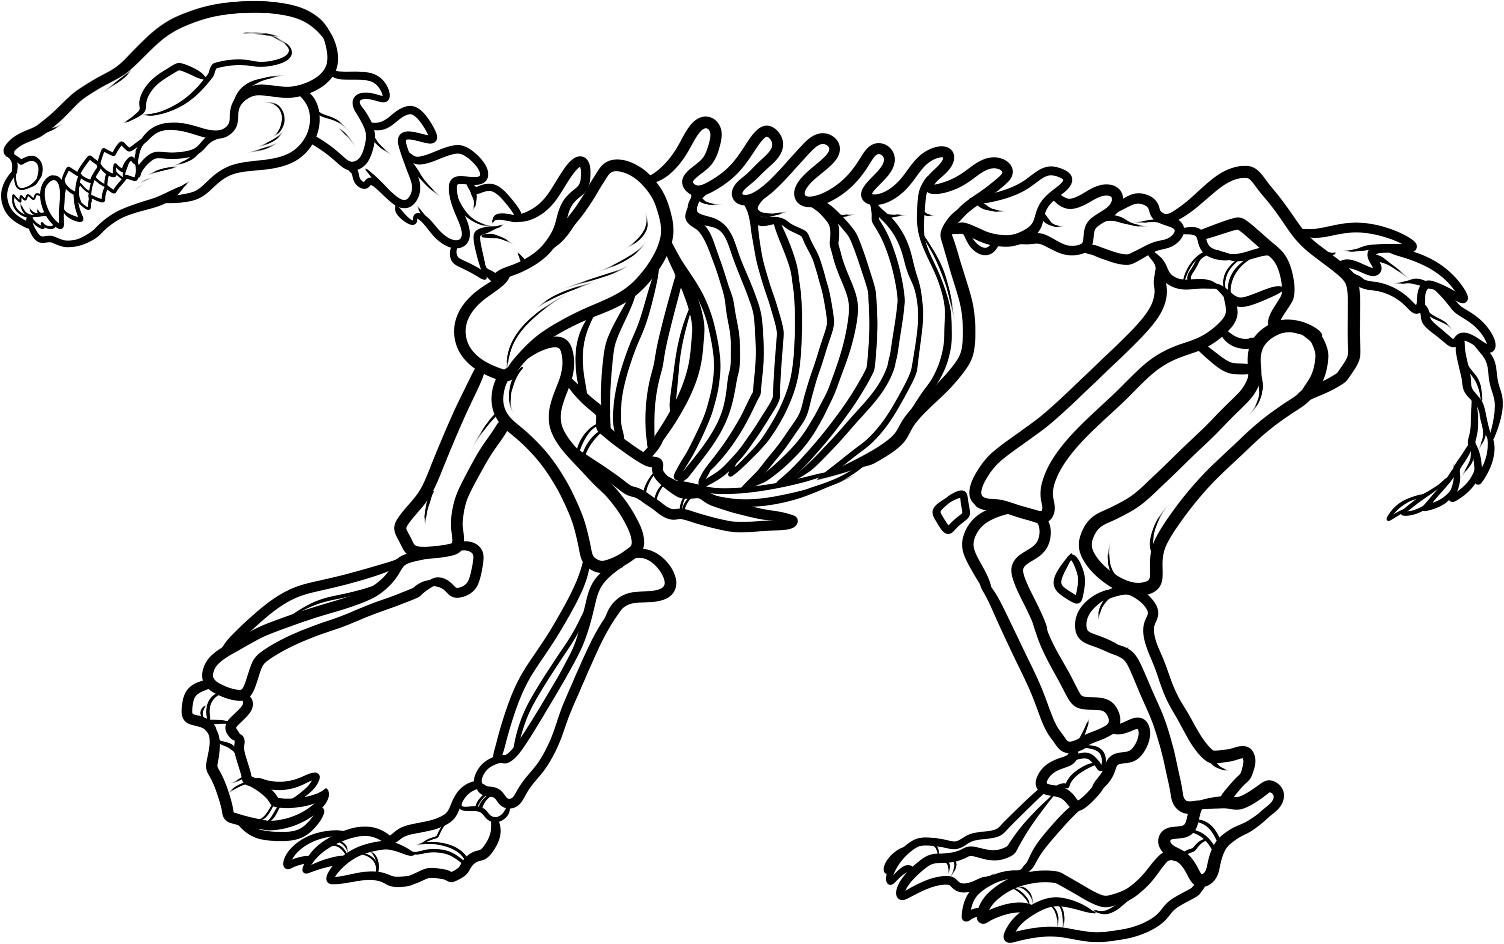 Scary Dinosaur Coloring Pages At Getcolorings